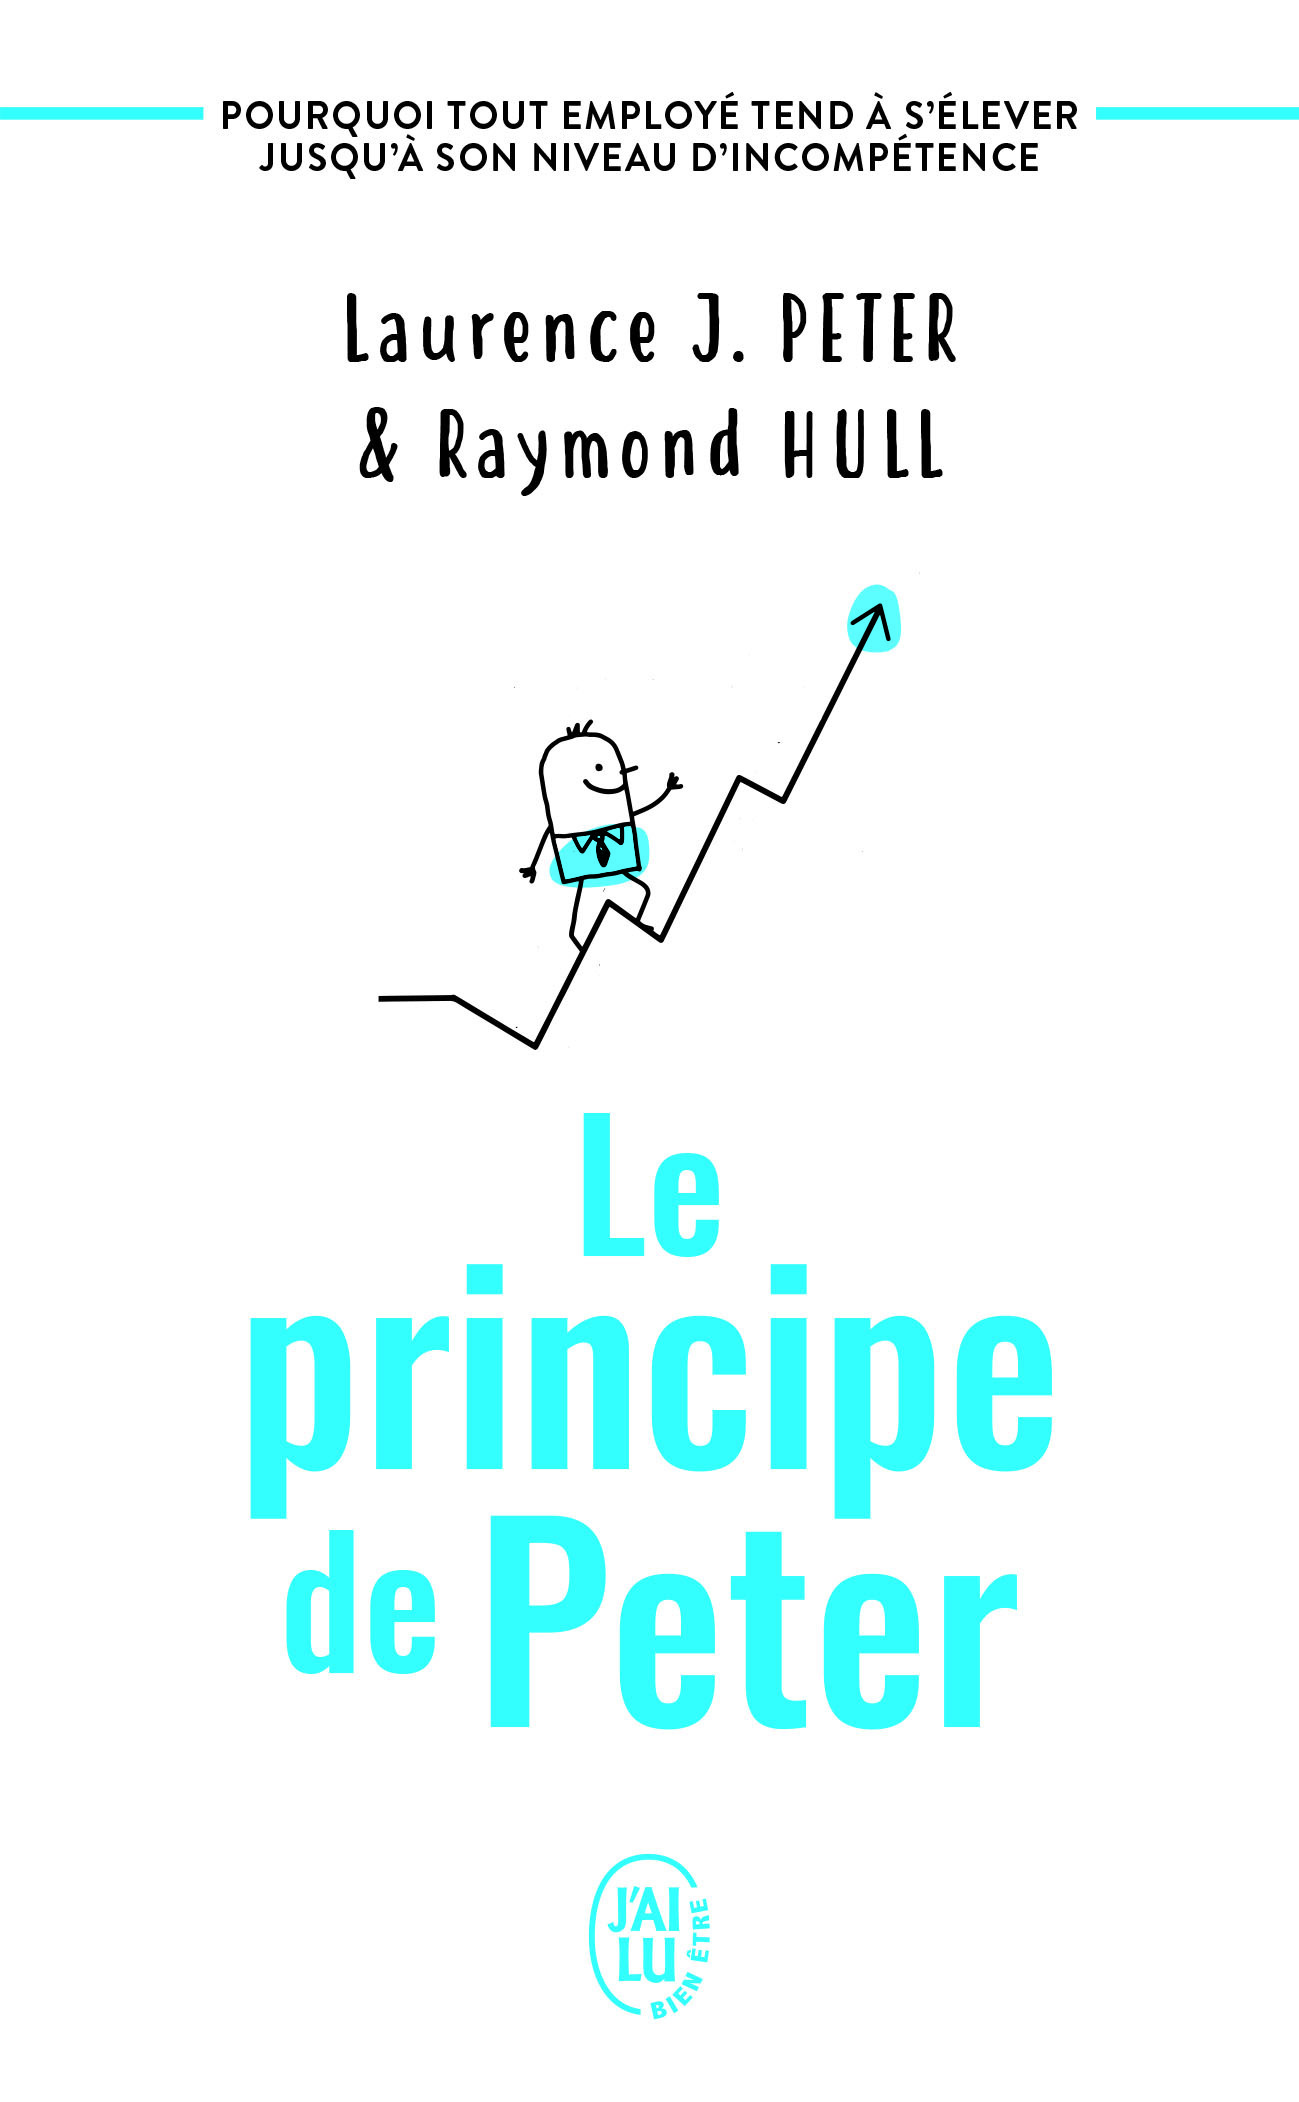 DEVELOPPEMENT PERSONNEL - LE PRINCIPE DE PETER